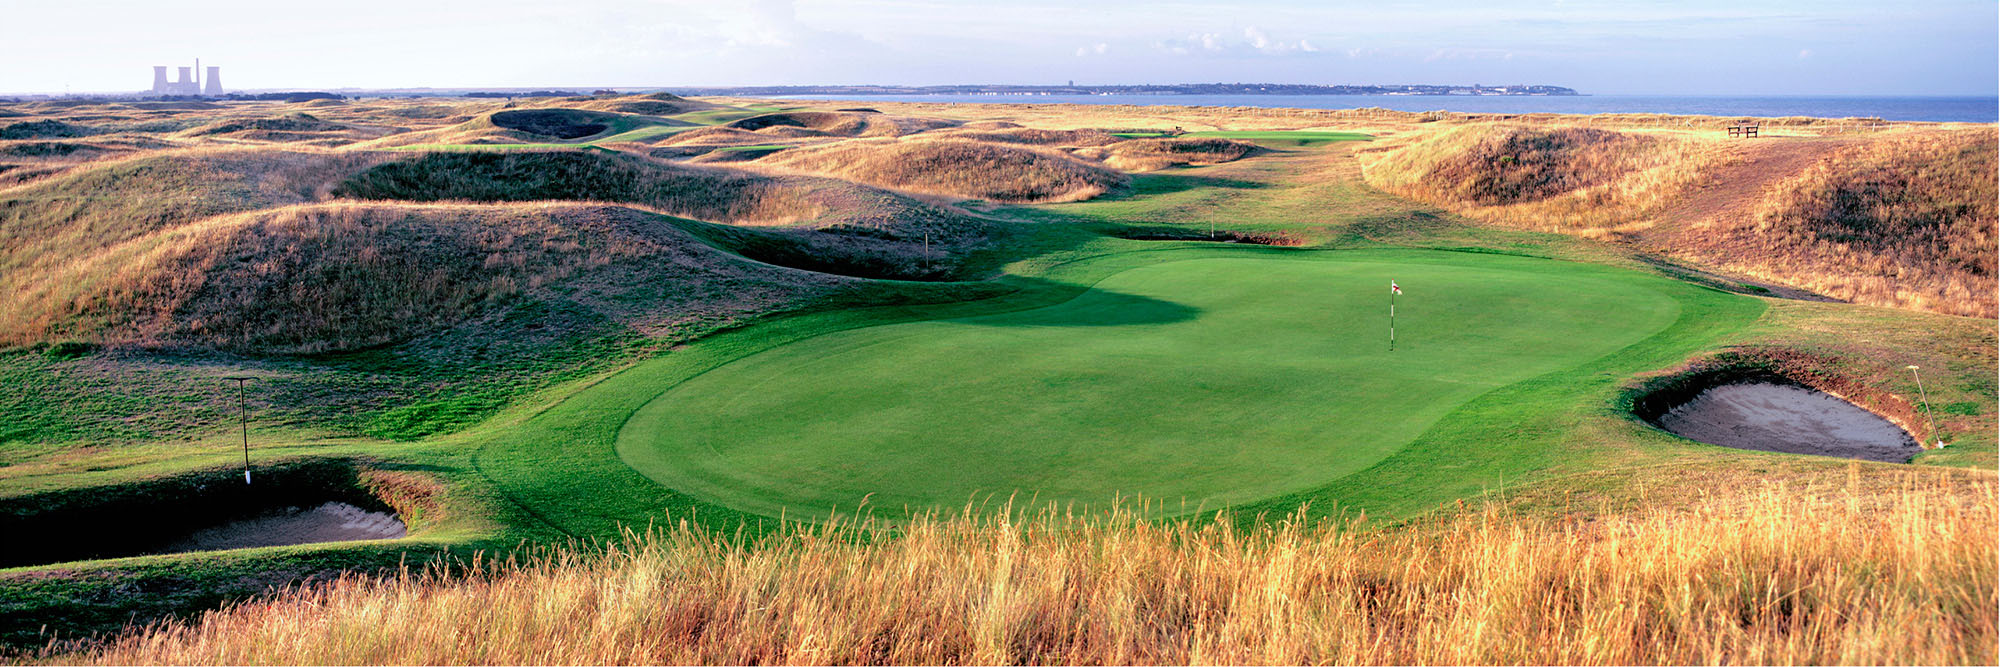 Golf Course Image - Royal St George's Golf Club No. 6